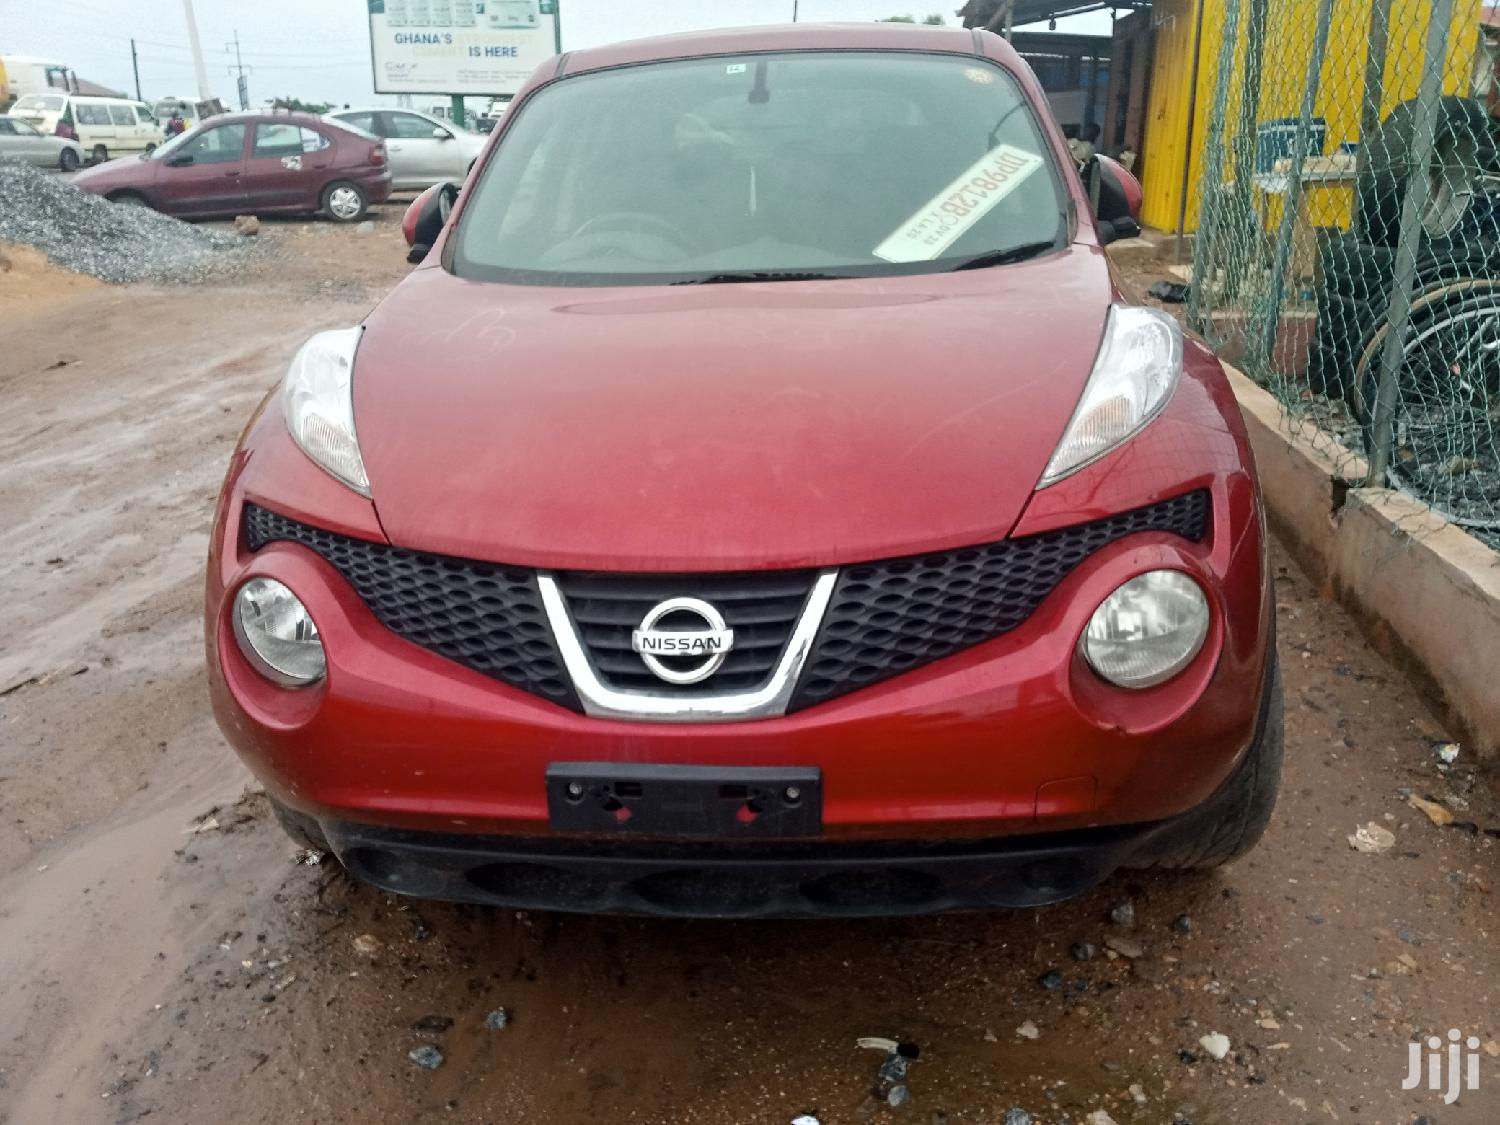 Nissan Juke 2010 | Cars for sale in Ga South Municipal, Greater Accra, Ghana